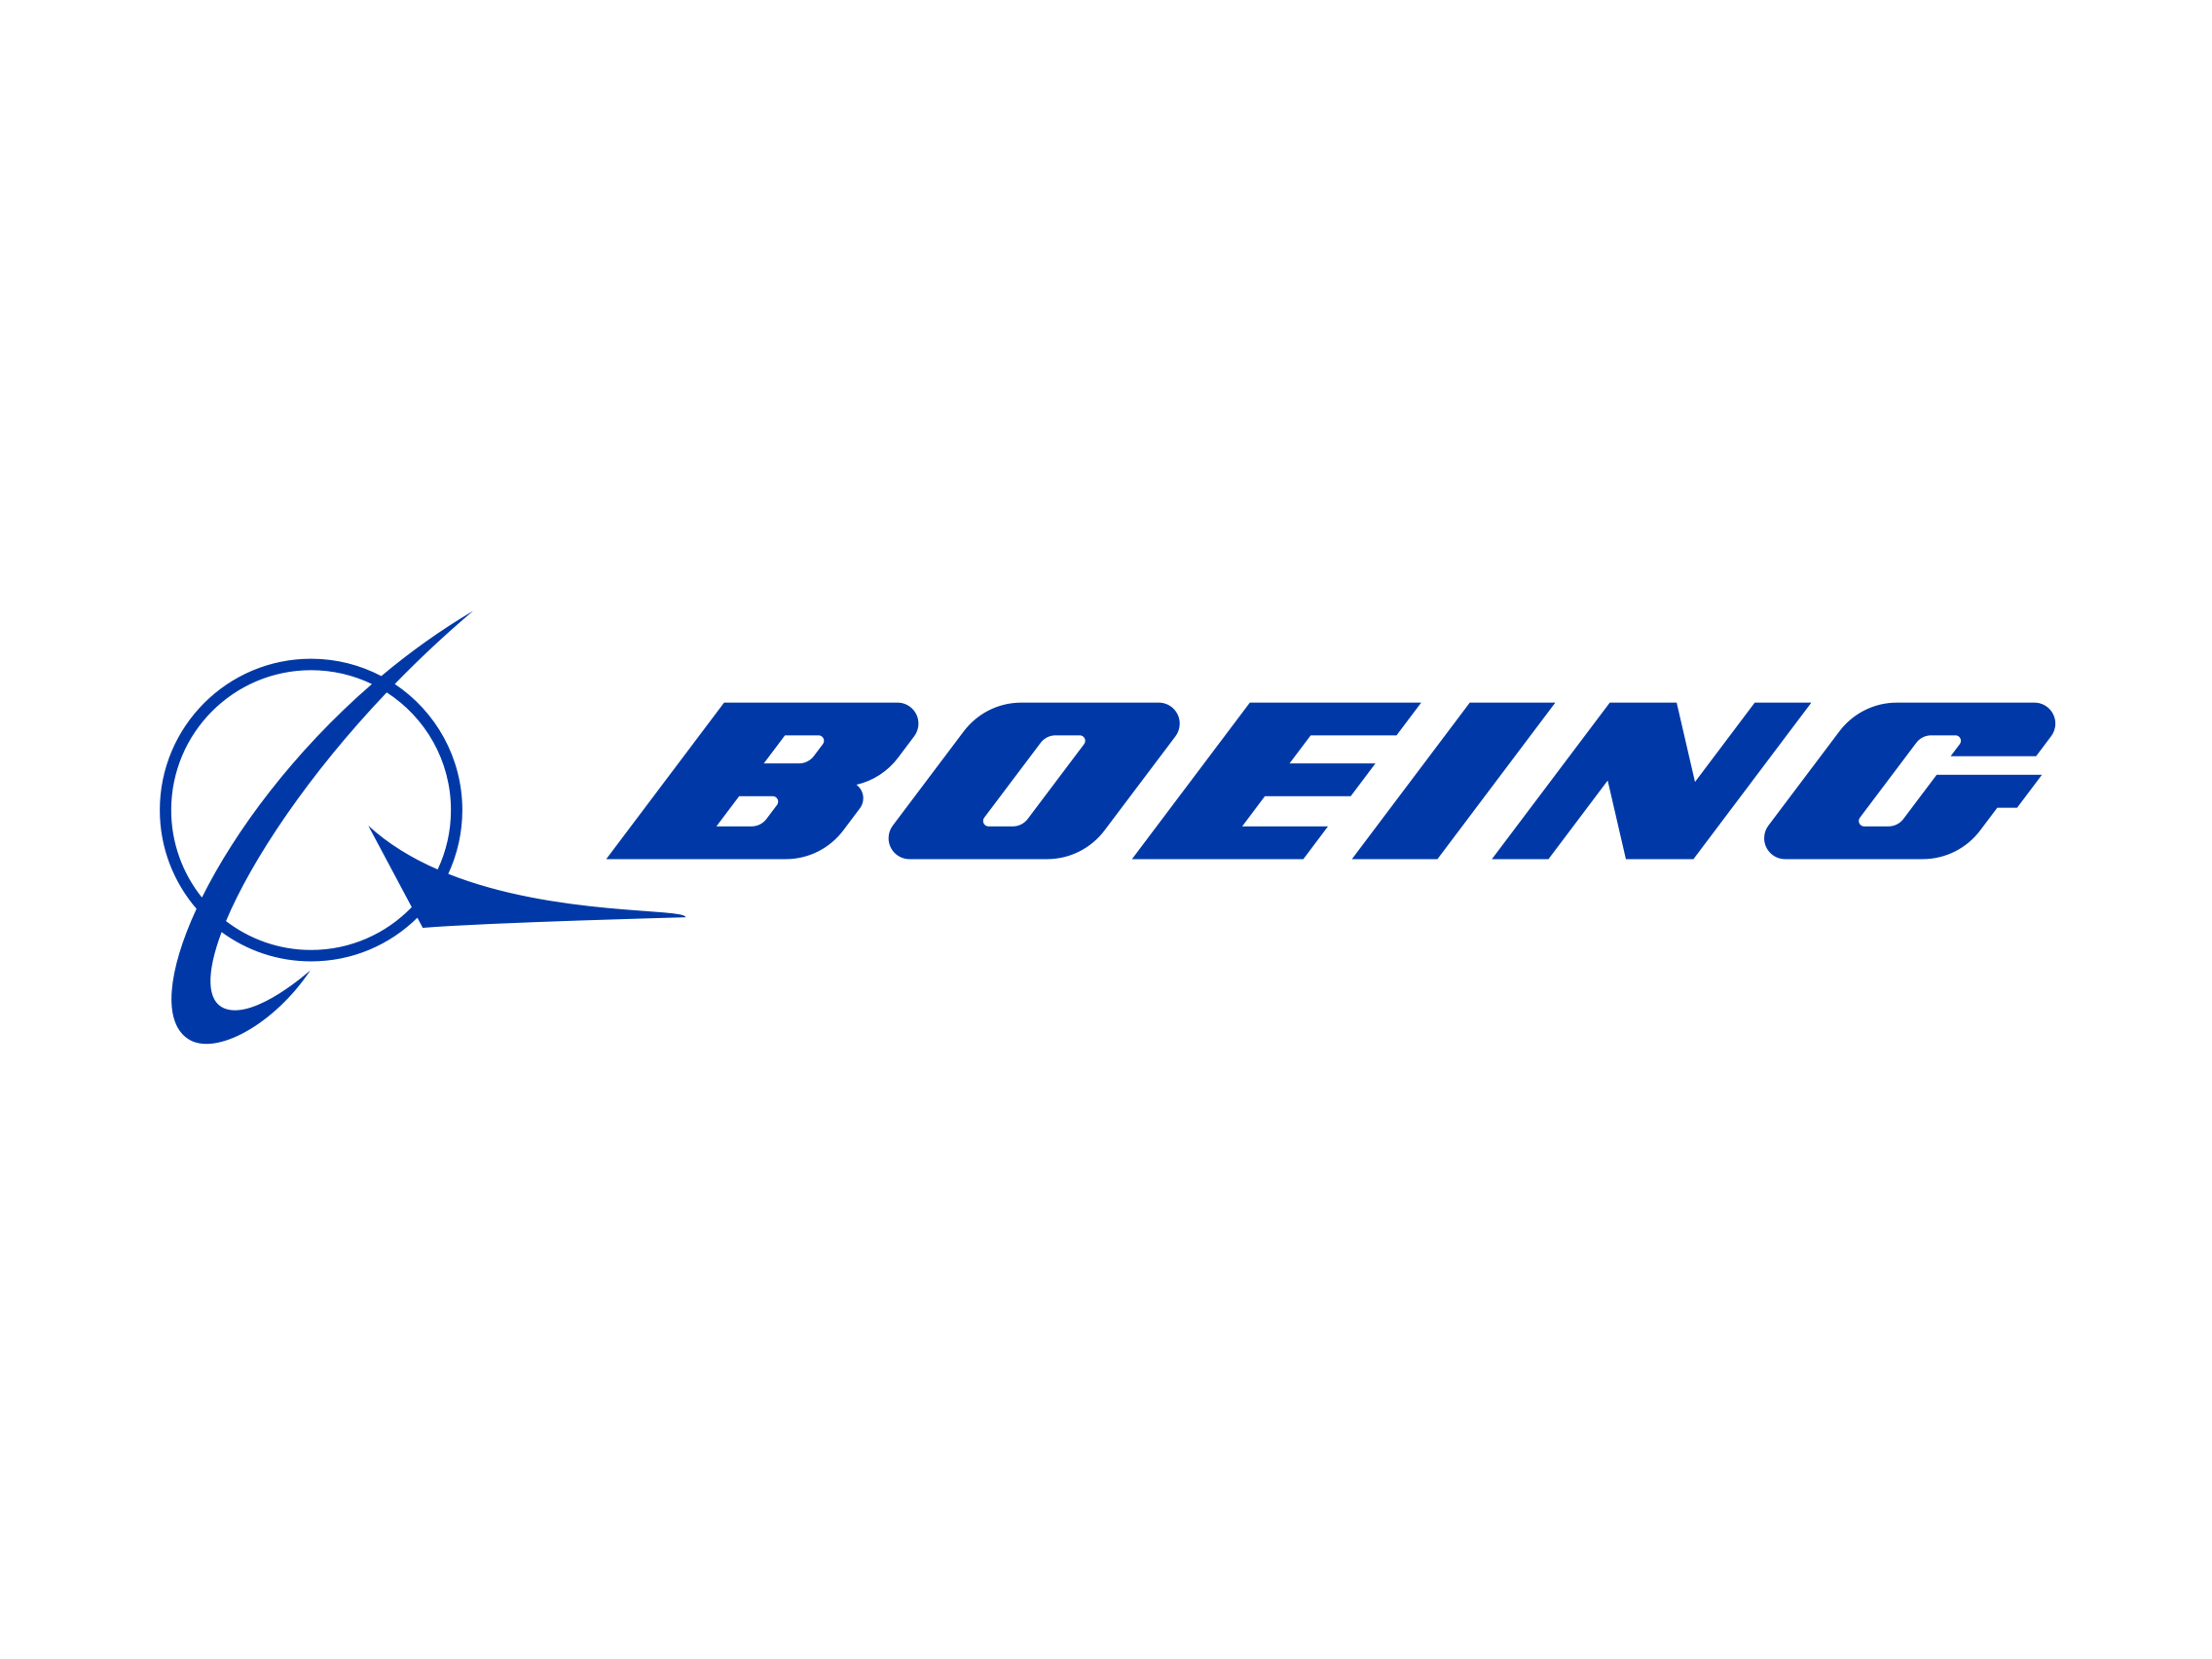 Boeing-logo-and-wordmark.png